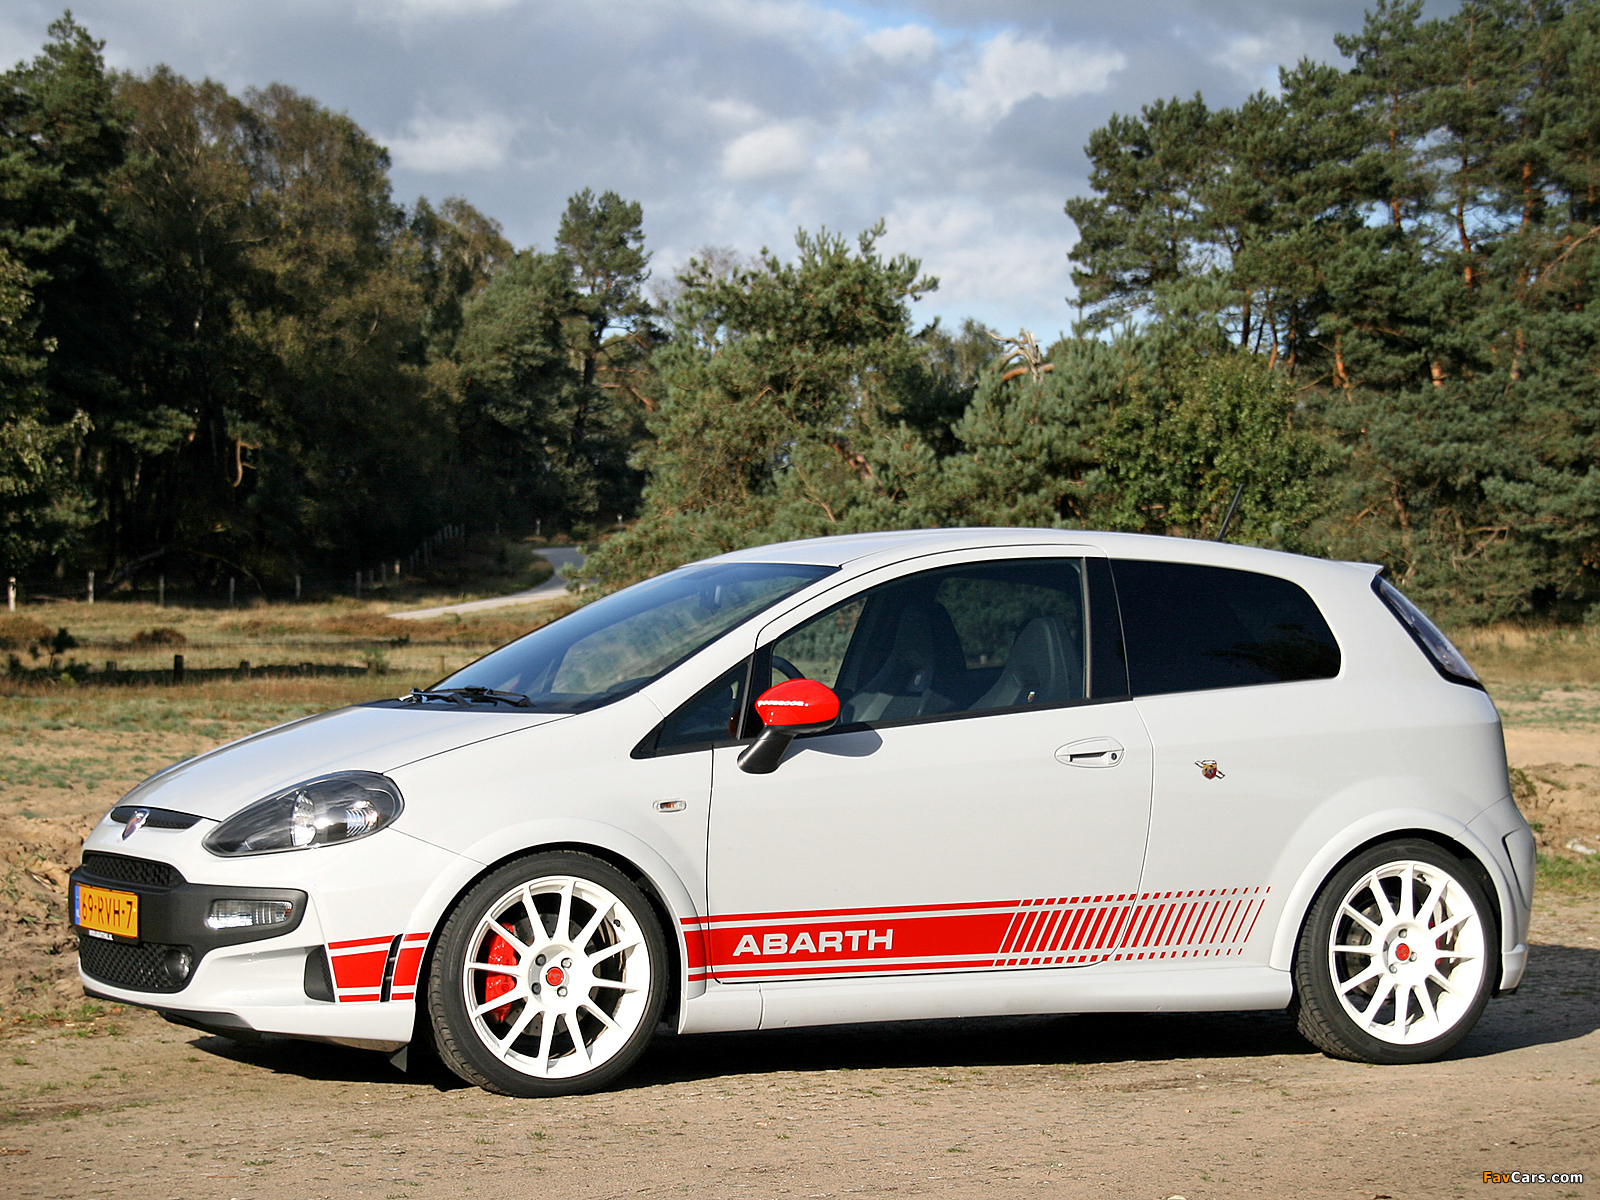 photos of abarth punto evo esseesse 199 2010 1600x1200. Black Bedroom Furniture Sets. Home Design Ideas